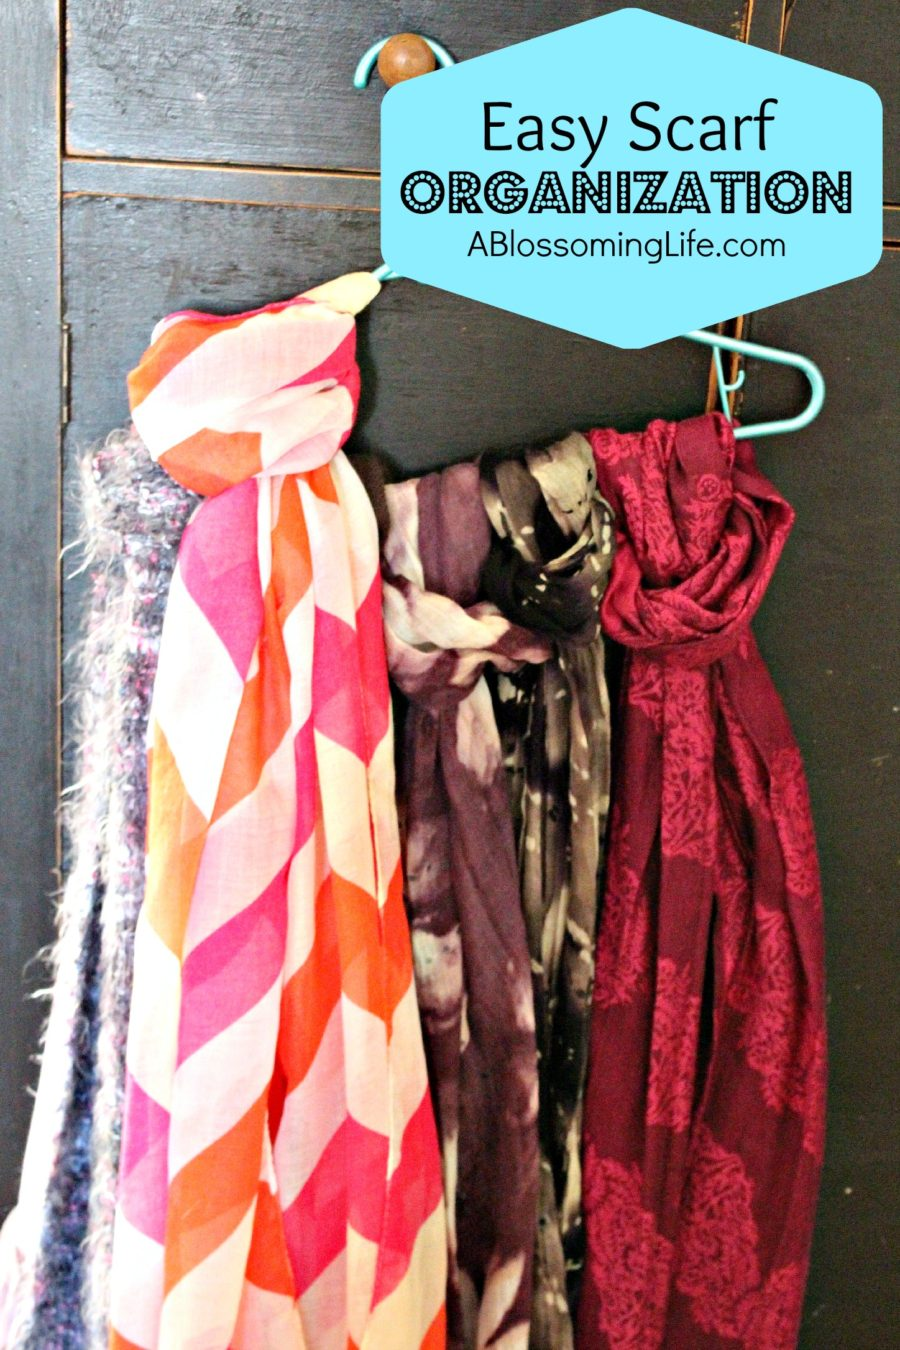 Easy Scarf Organization